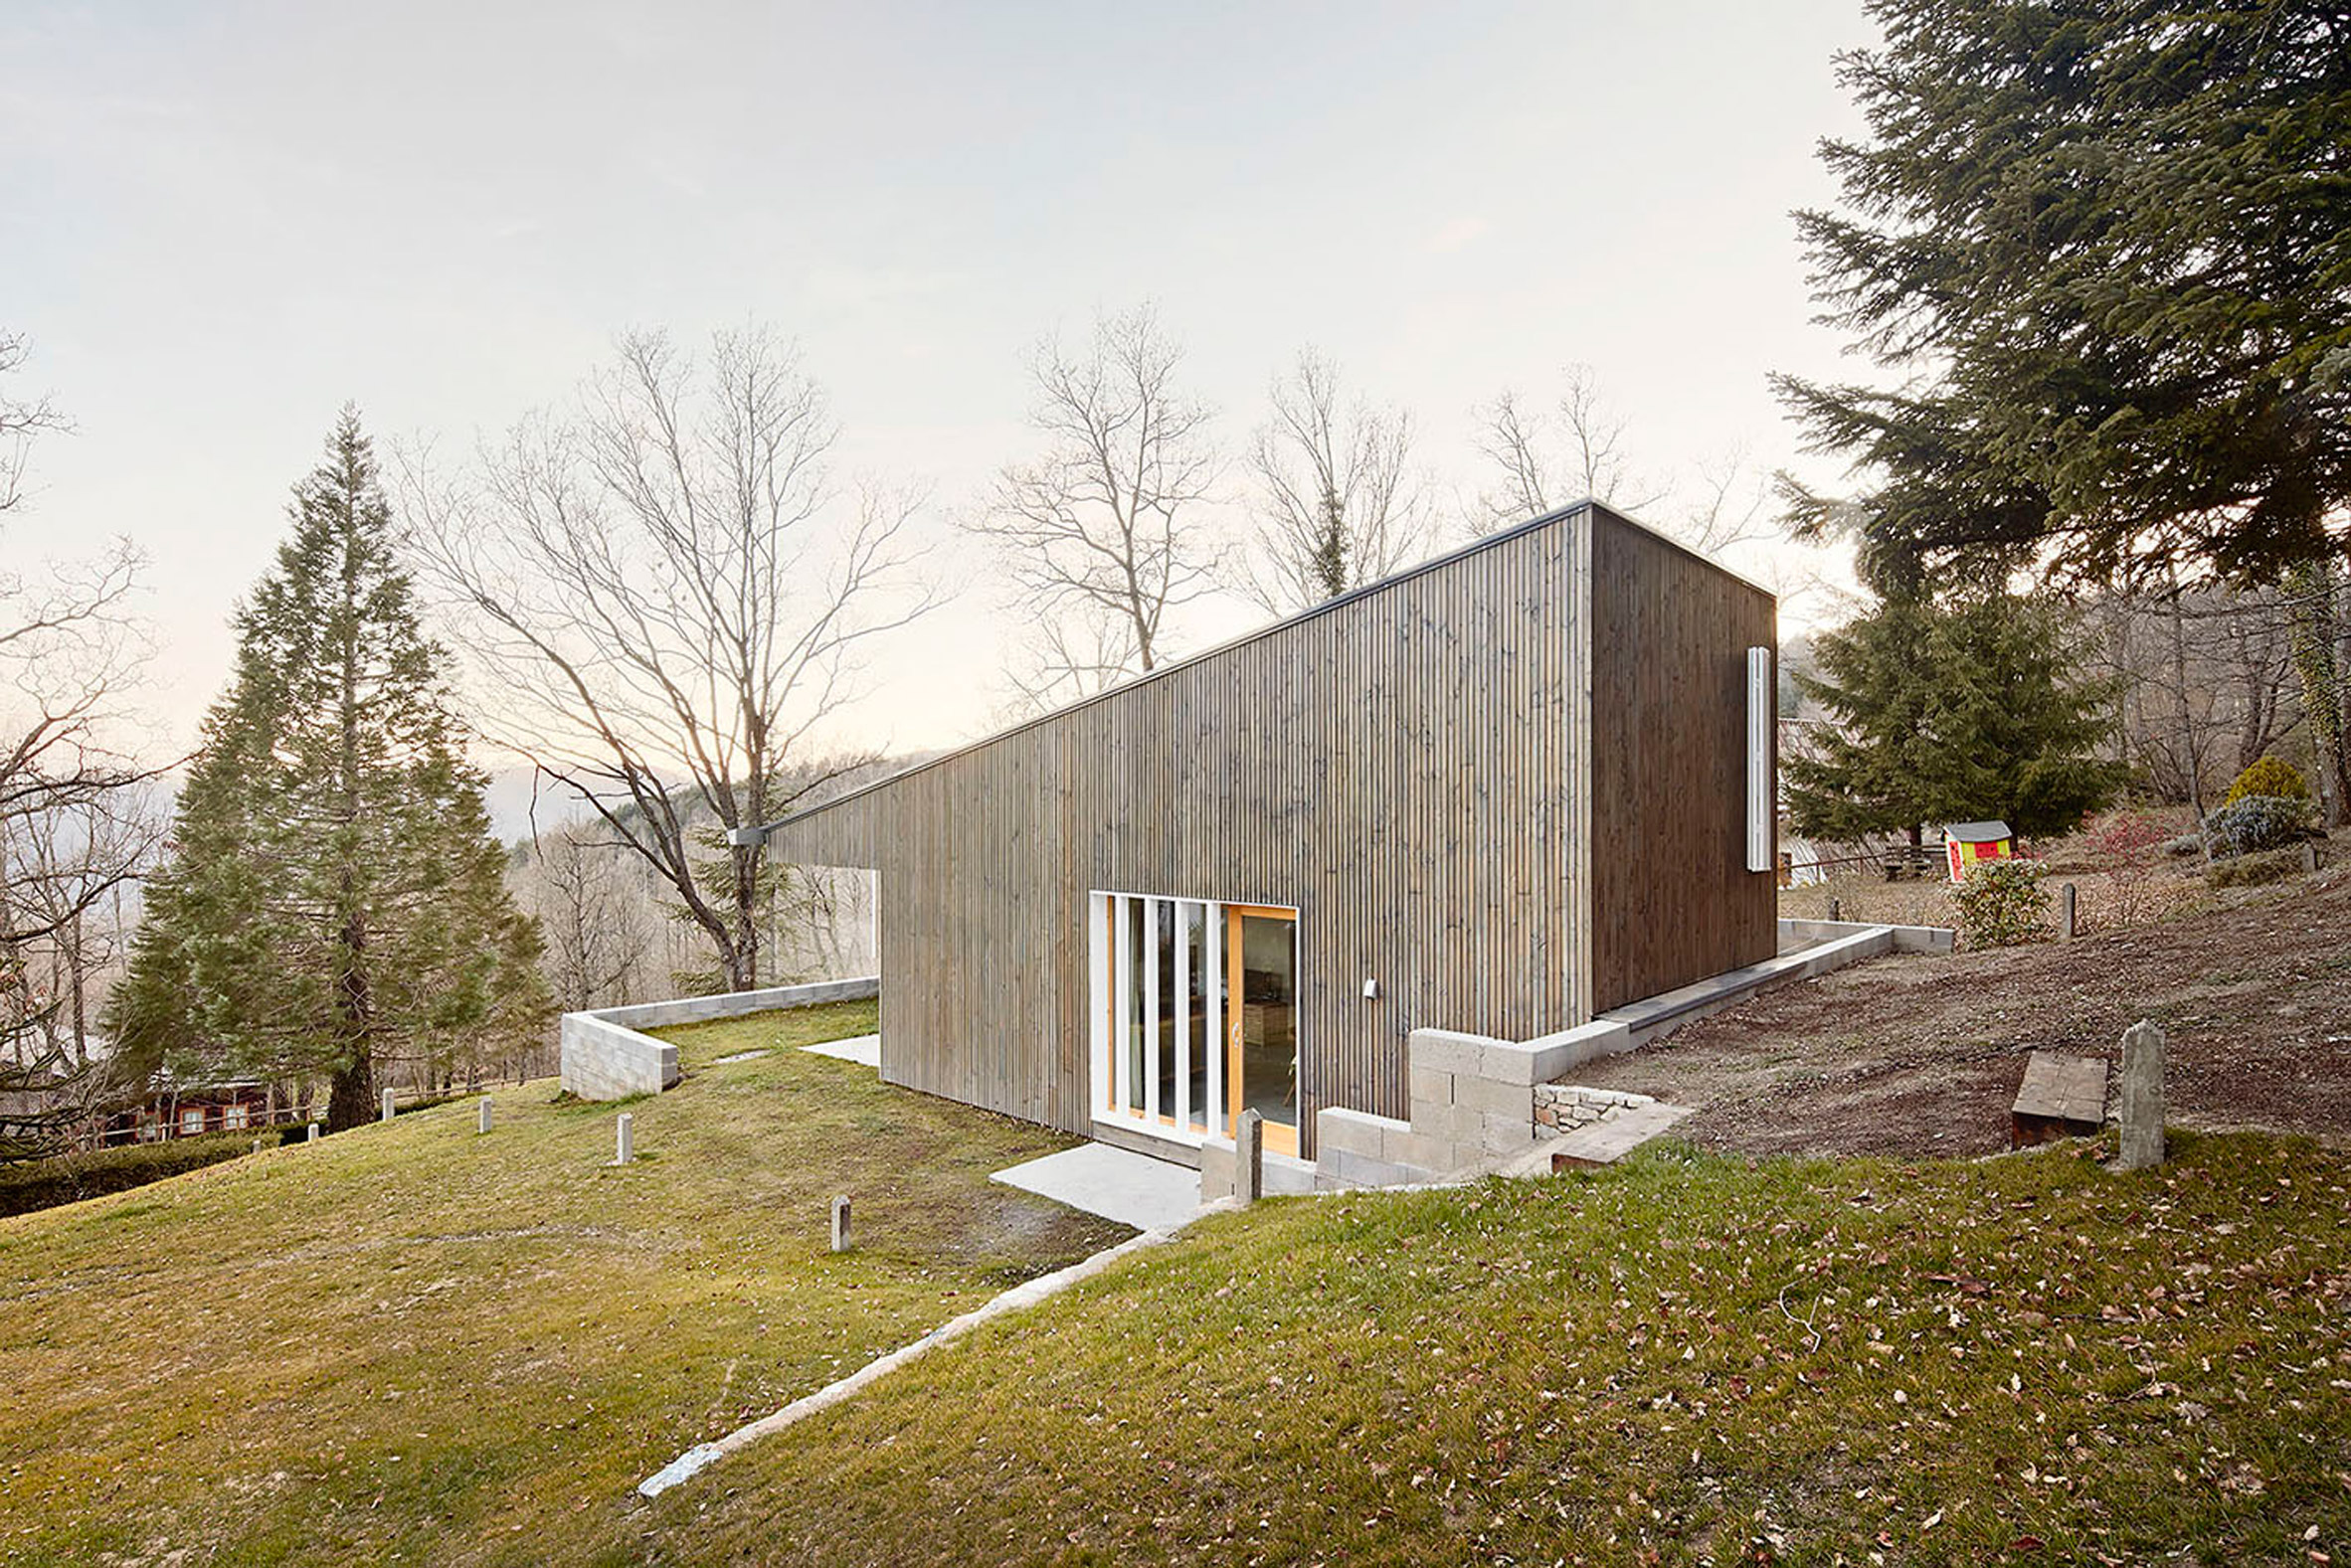 9. Prefababricated wooden home in the Pyrenees by architect Marc Mogas - Prefabricated wooden home in the Pyrenees by architect Marc Mogas